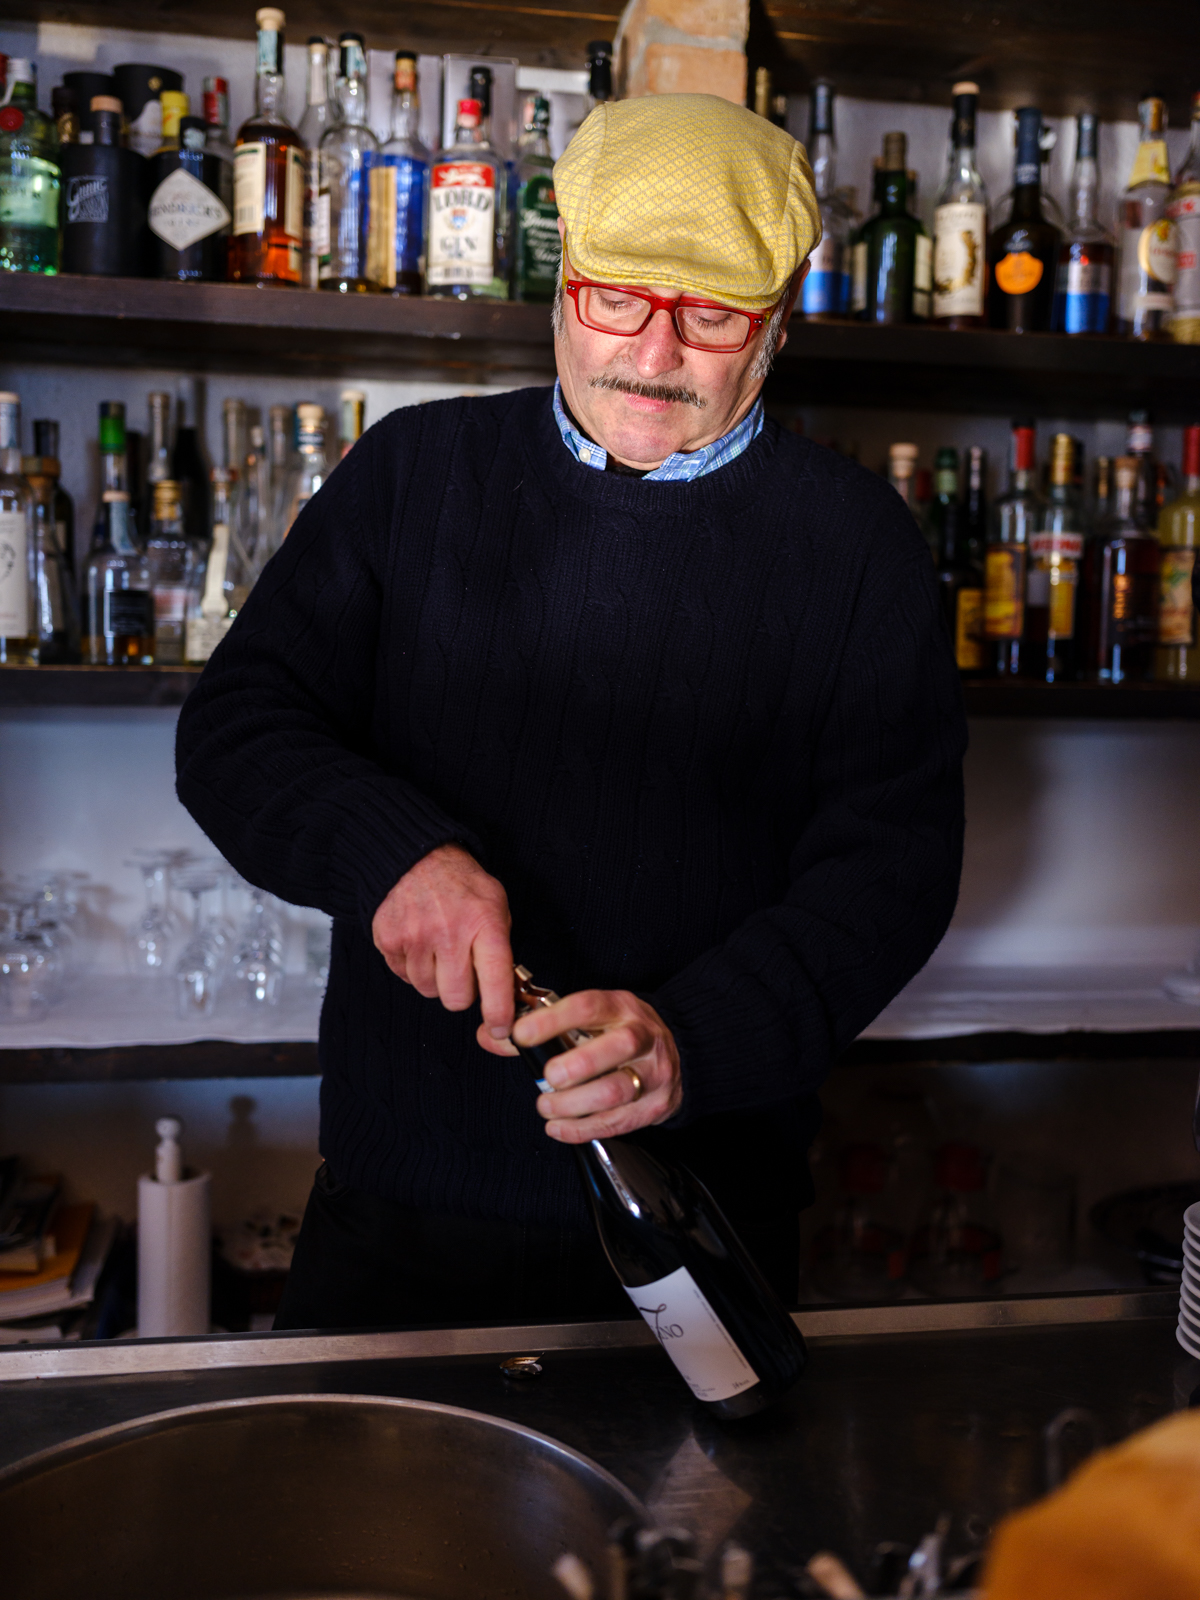 Gino, owner of ristorante Belbo Da Bardon, opening a bottle wine in his restaurant (f/2.8, 1/160s, ISO 1600)